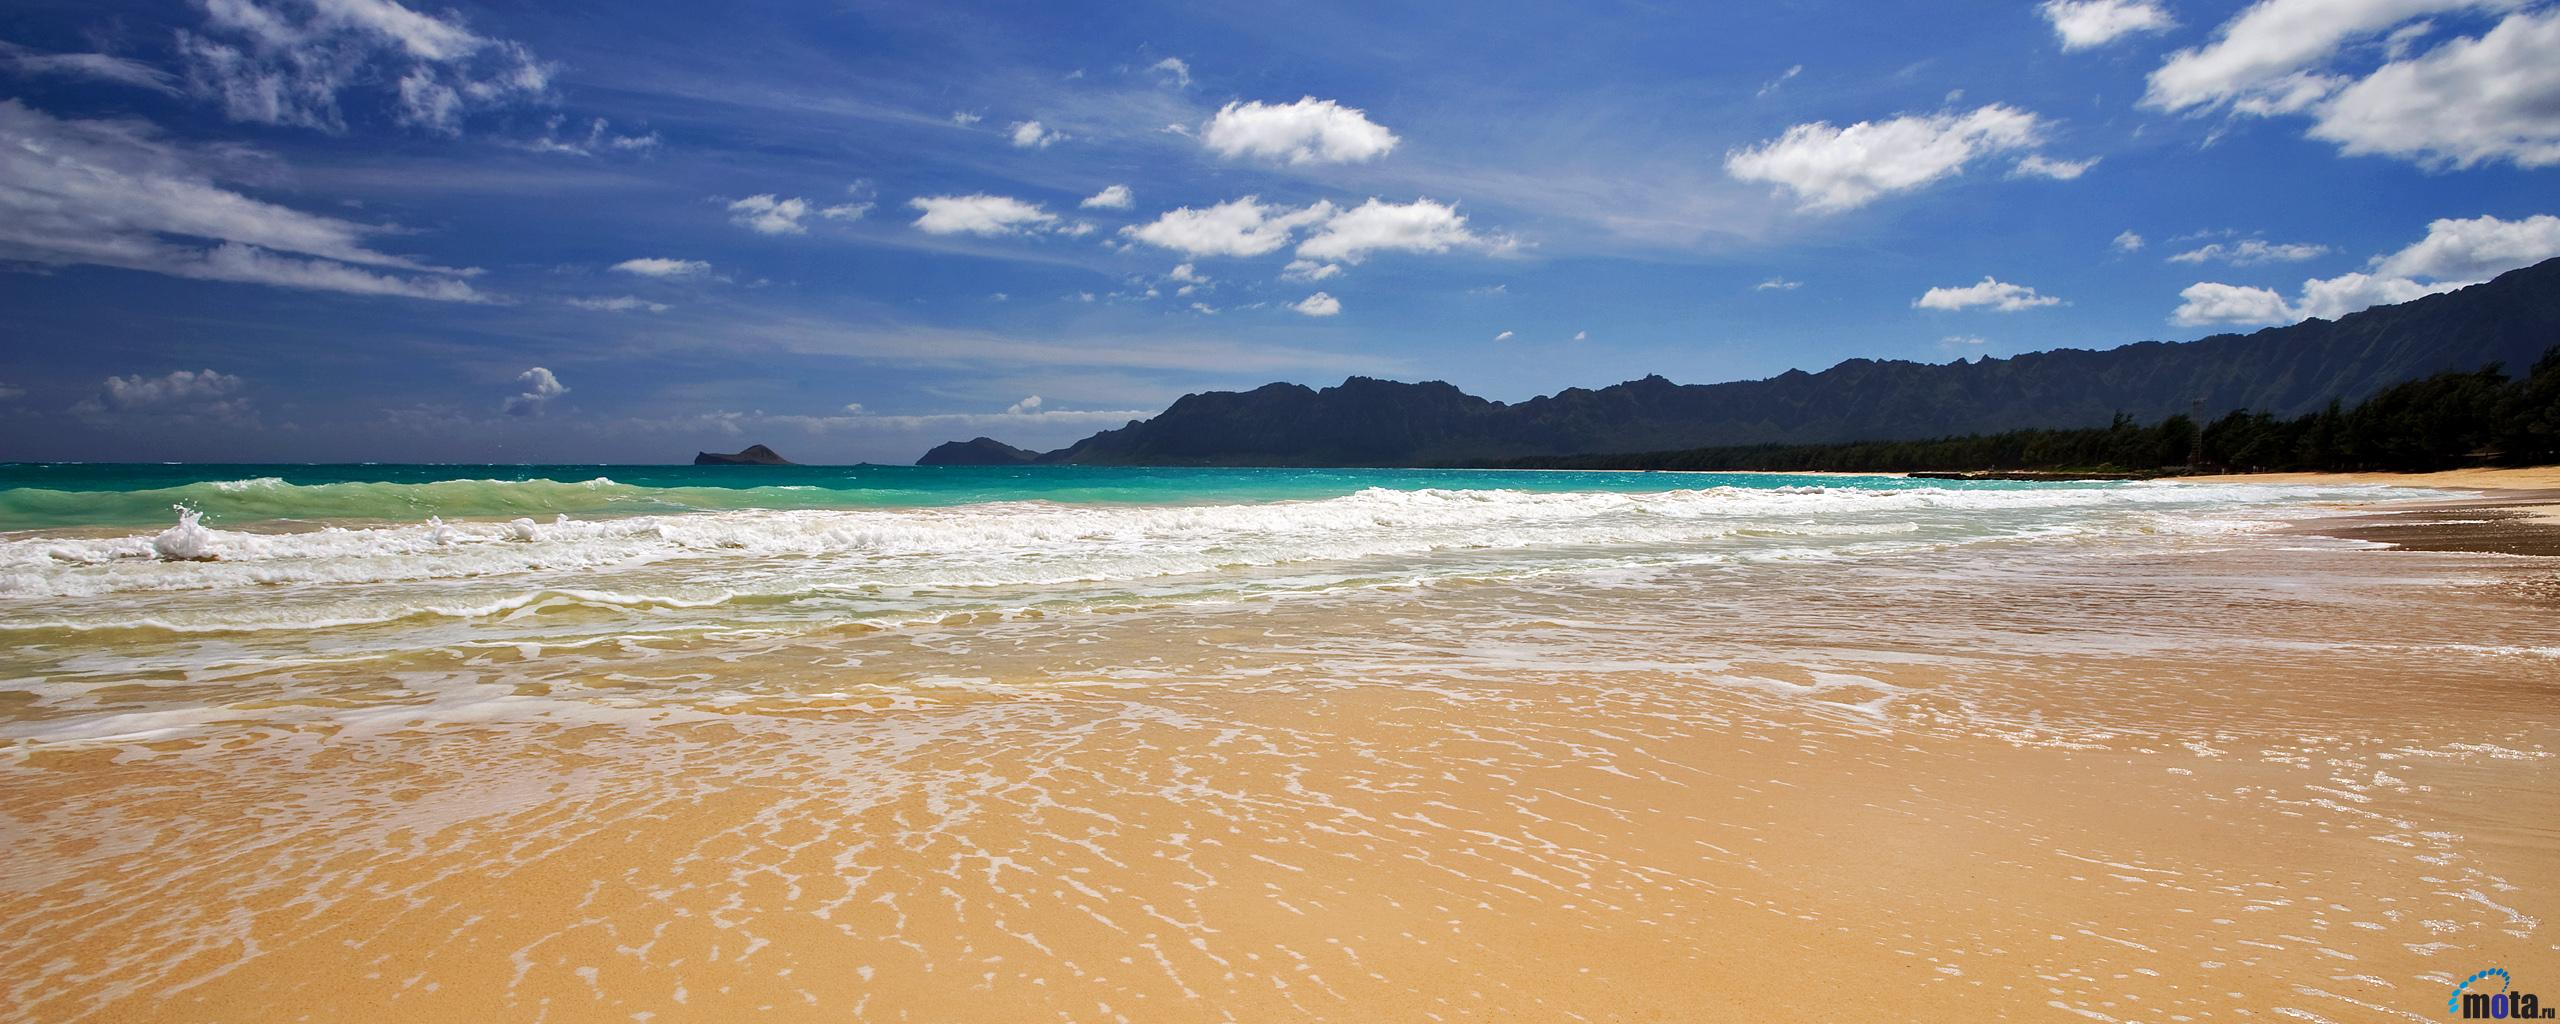 Download Wallpaper Bellows Beach Oahu Hawaii 2560 x 1024 Dual 2560x1024